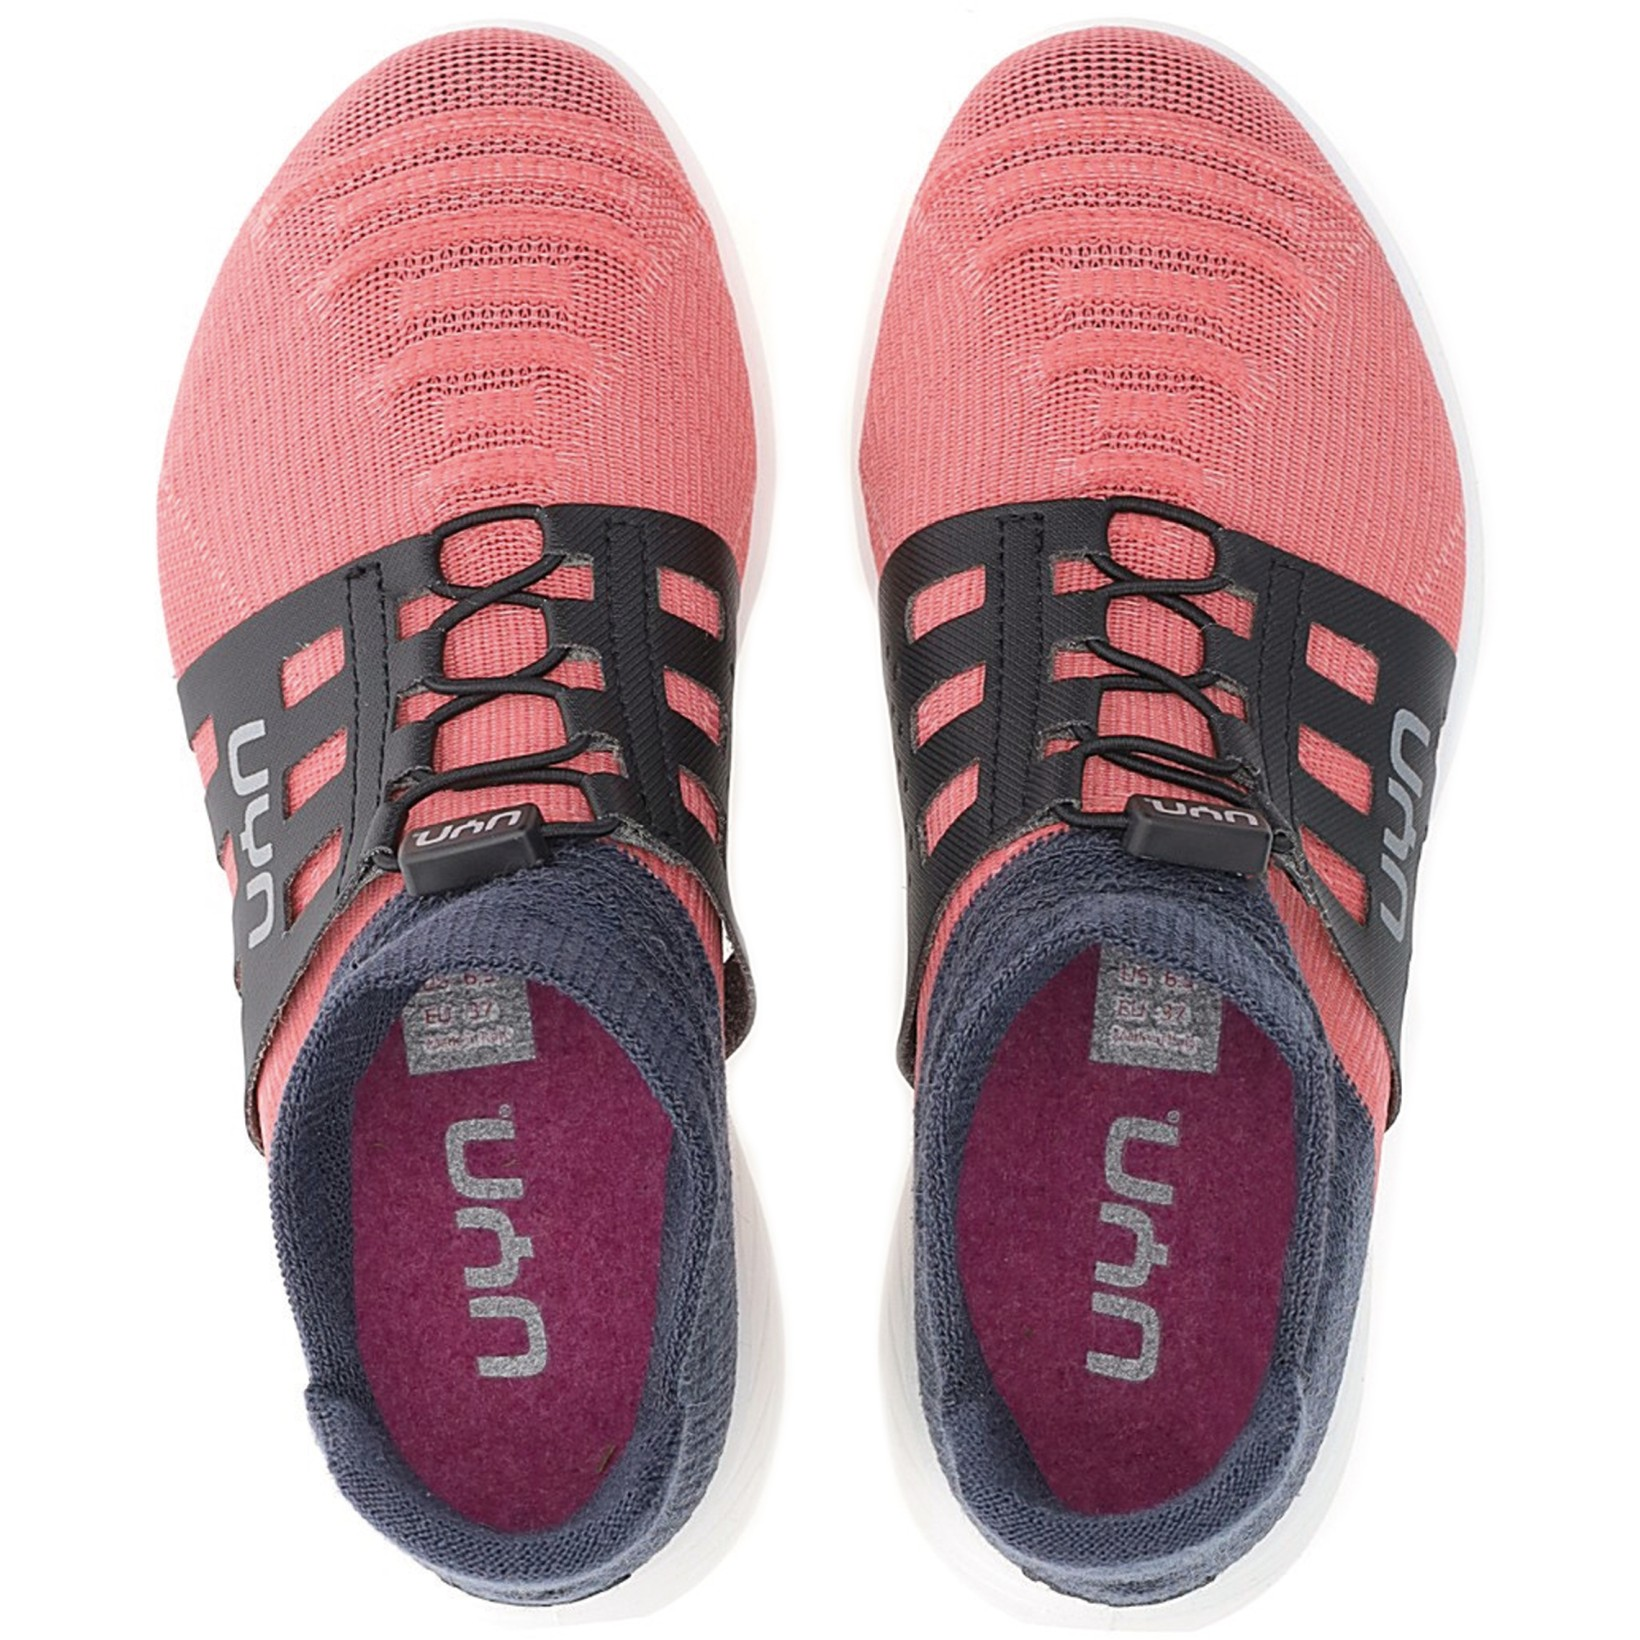 Image of UYN X-Cross Tune Running Shoes Women - Pink/Carbon